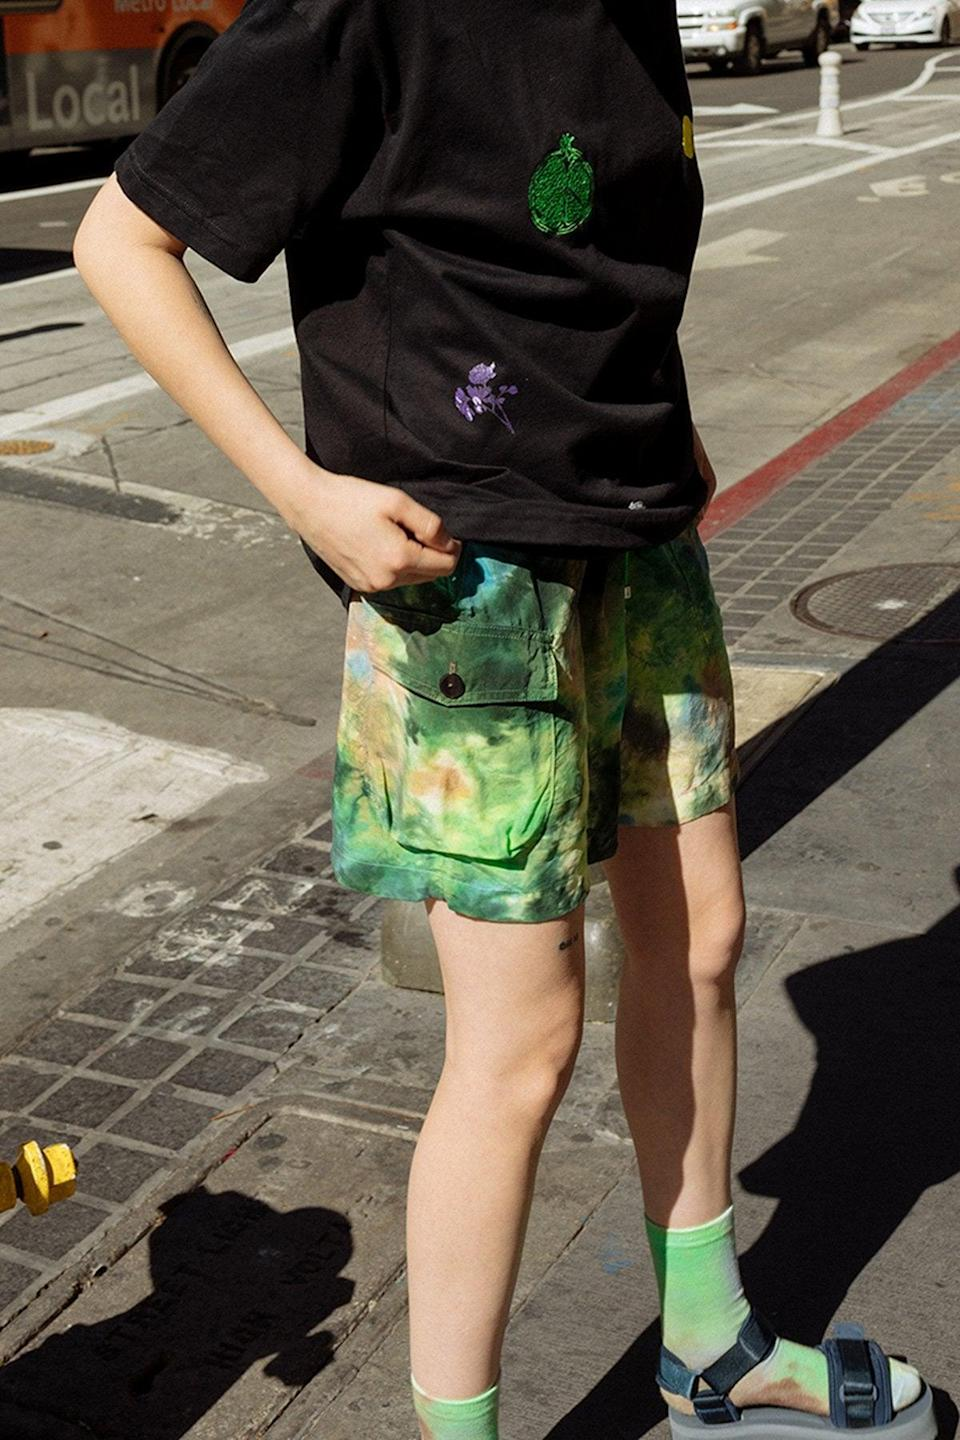 "<br><br><strong>KKCo</strong> Camp Short in Earth Tie-Dye, $, available at <a href=""https://go.skimresources.com/?id=30283X879131&url=https%3A%2F%2Fwww.kkcostudio.com%2Fcollections%2Farchive%2Fproducts%2Fcamp-short-in-earth-tie-dye"" rel=""nofollow noopener"" target=""_blank"" data-ylk=""slk:KKCo"" class=""link rapid-noclick-resp"">KKCo</a>"